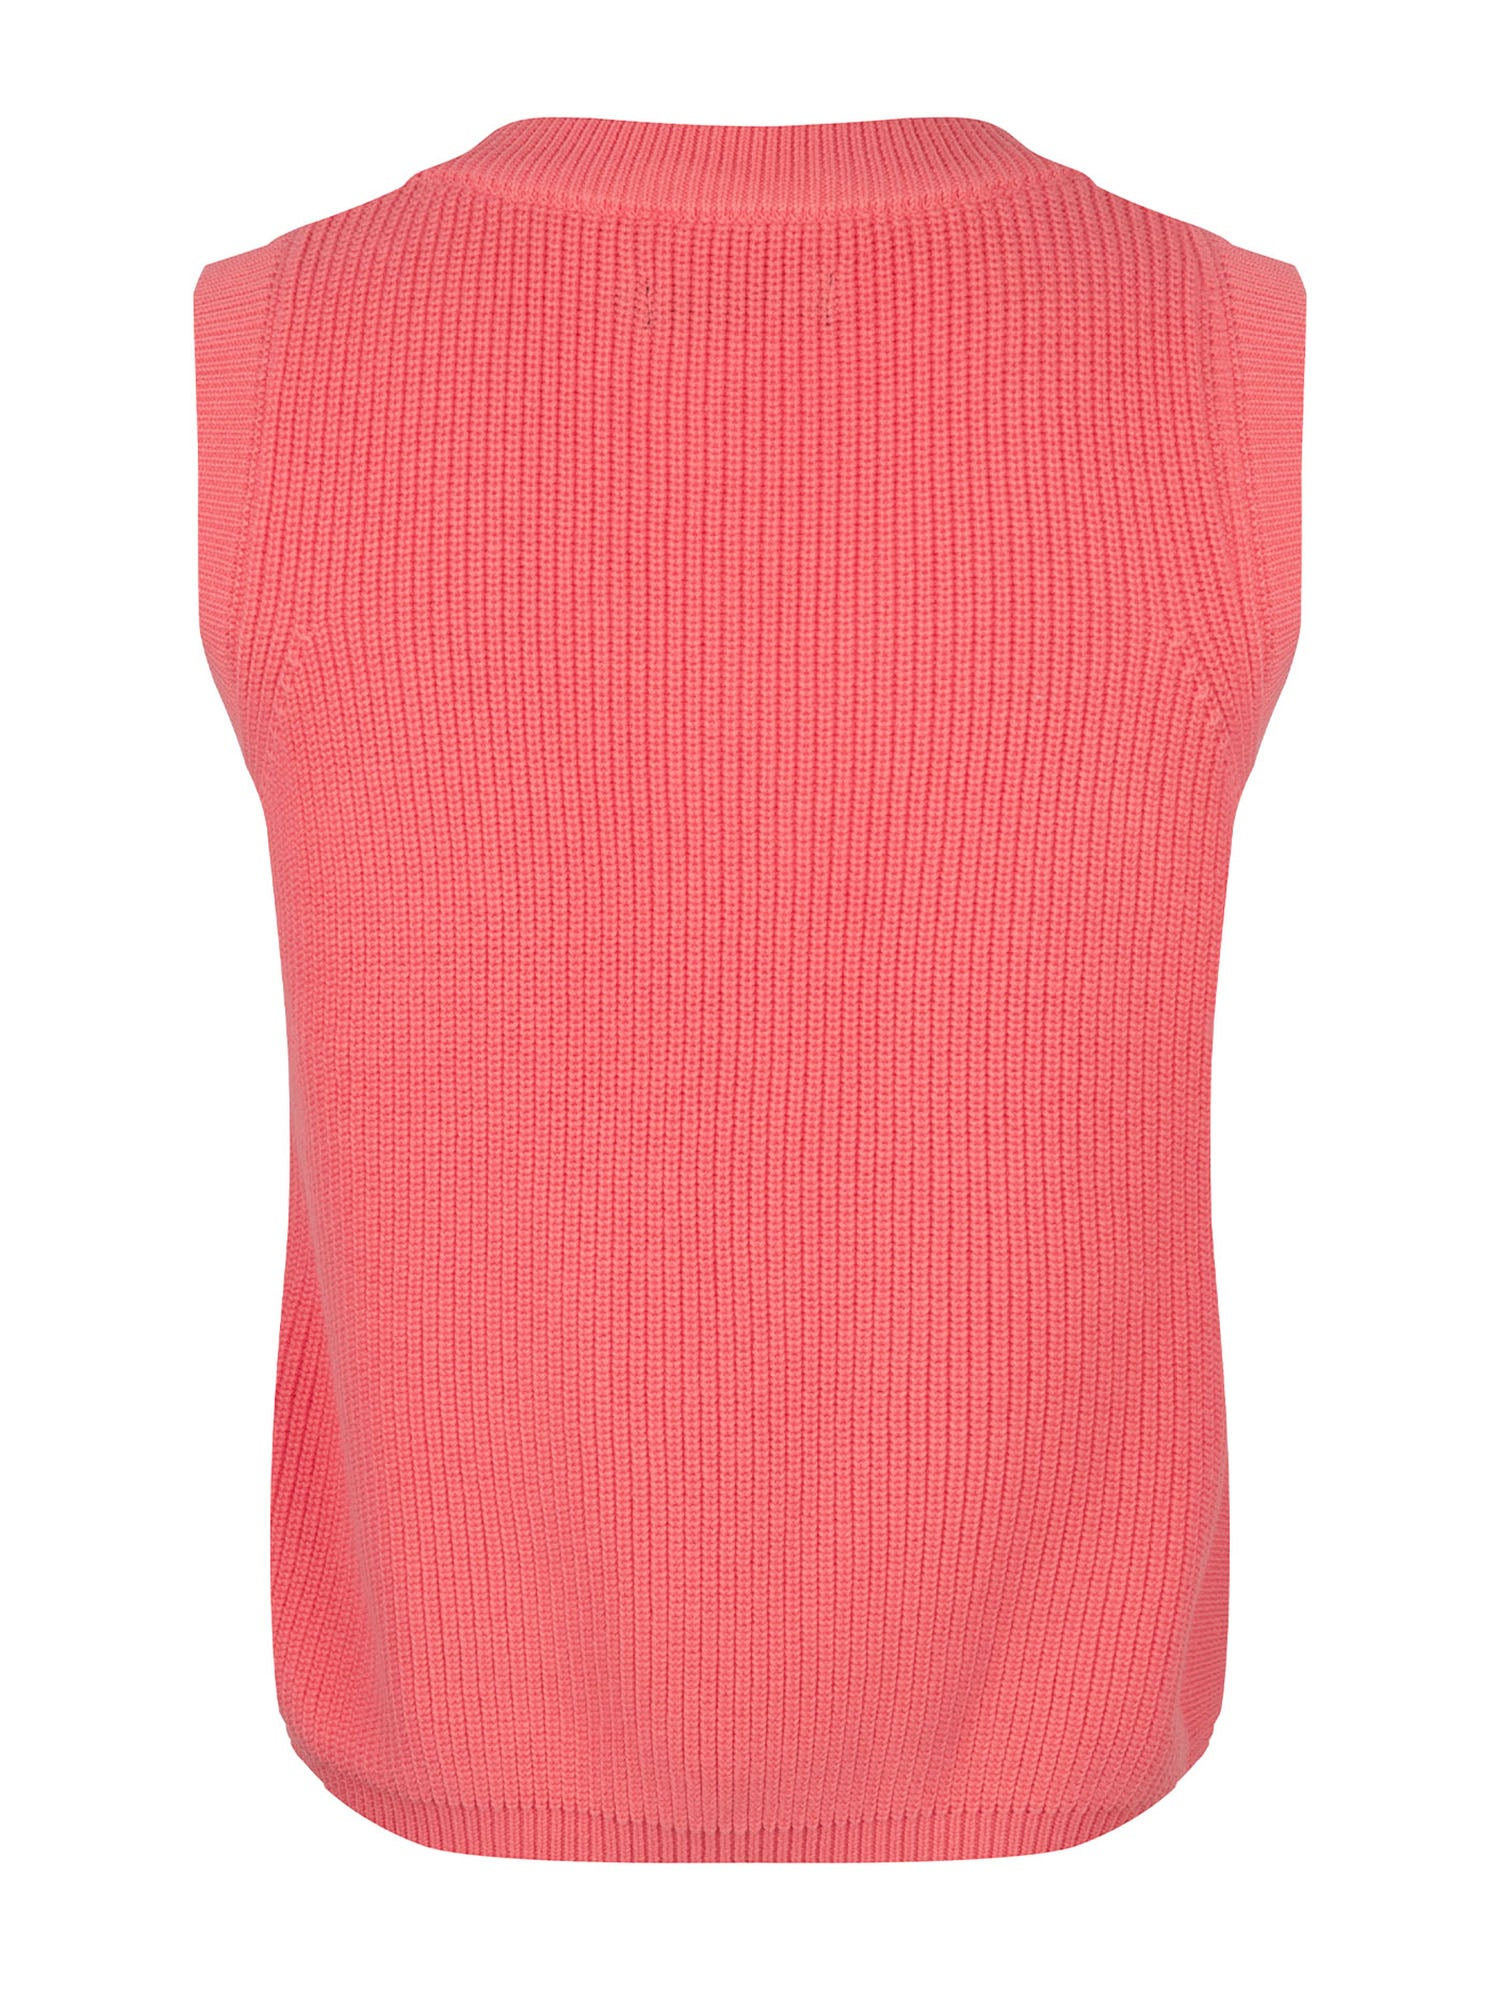 Spencer Yentl coral pink